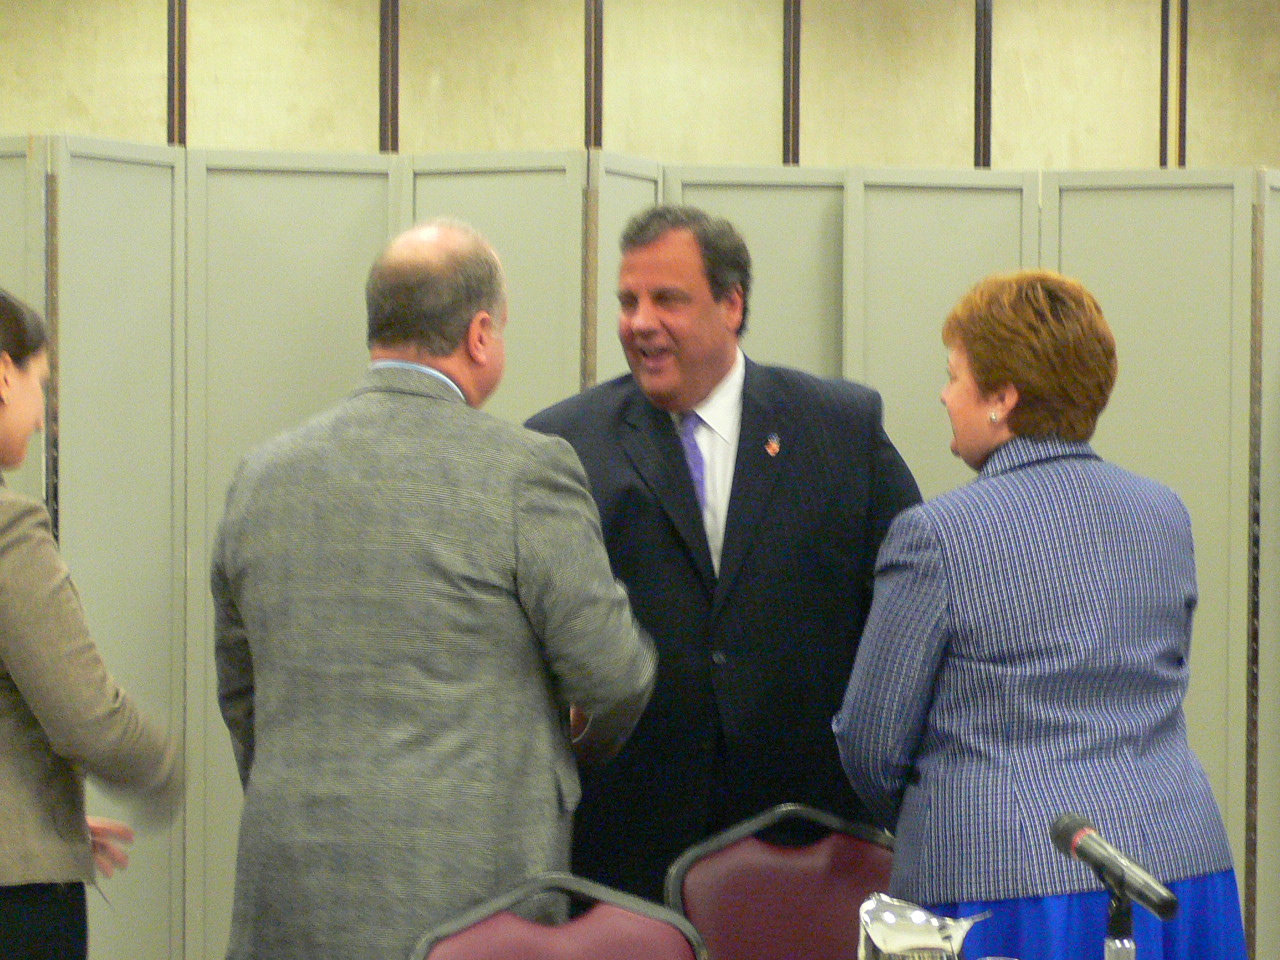 2013-12-03-Christie-Meeting-1.jpg